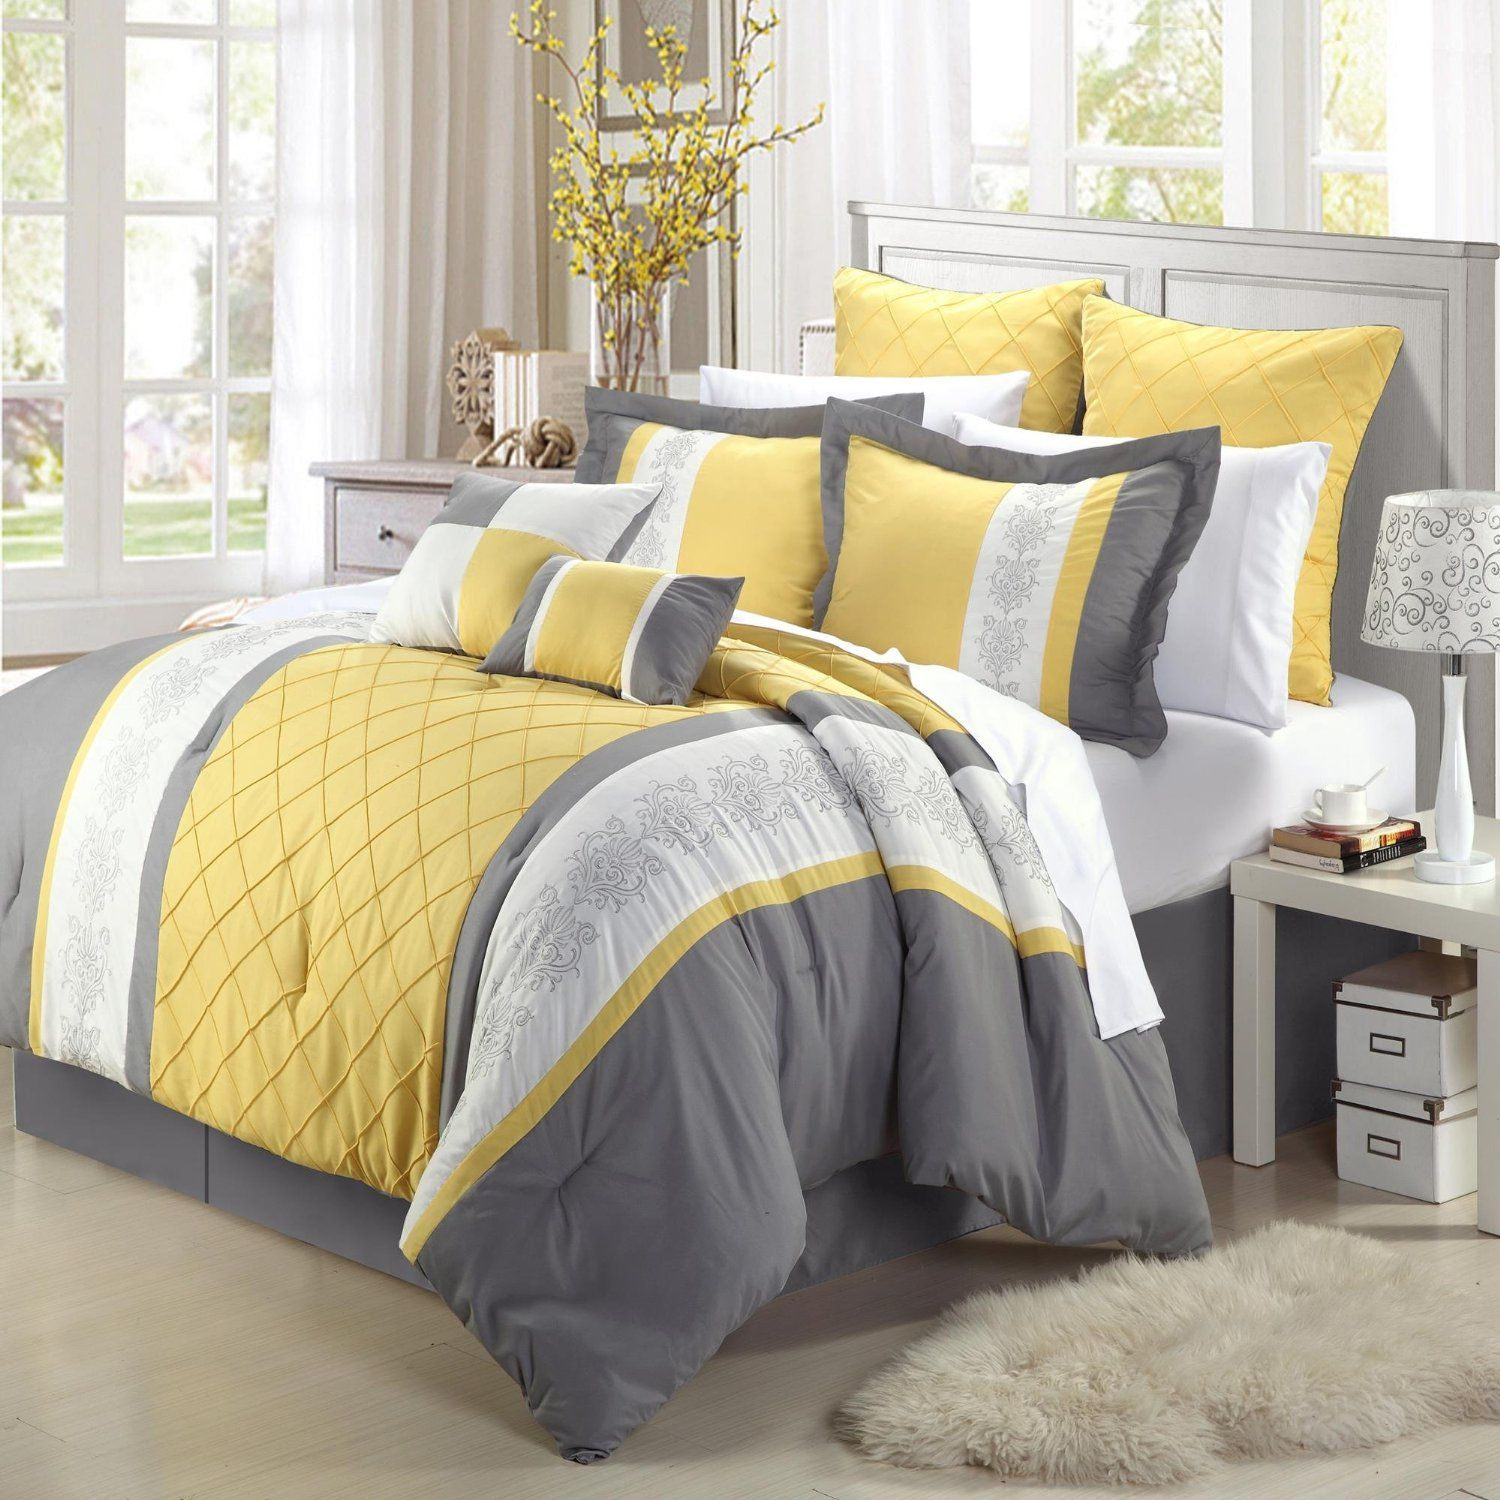 Chic Home 8 Piece Embroidery forter Set Queen Livingston Yellow